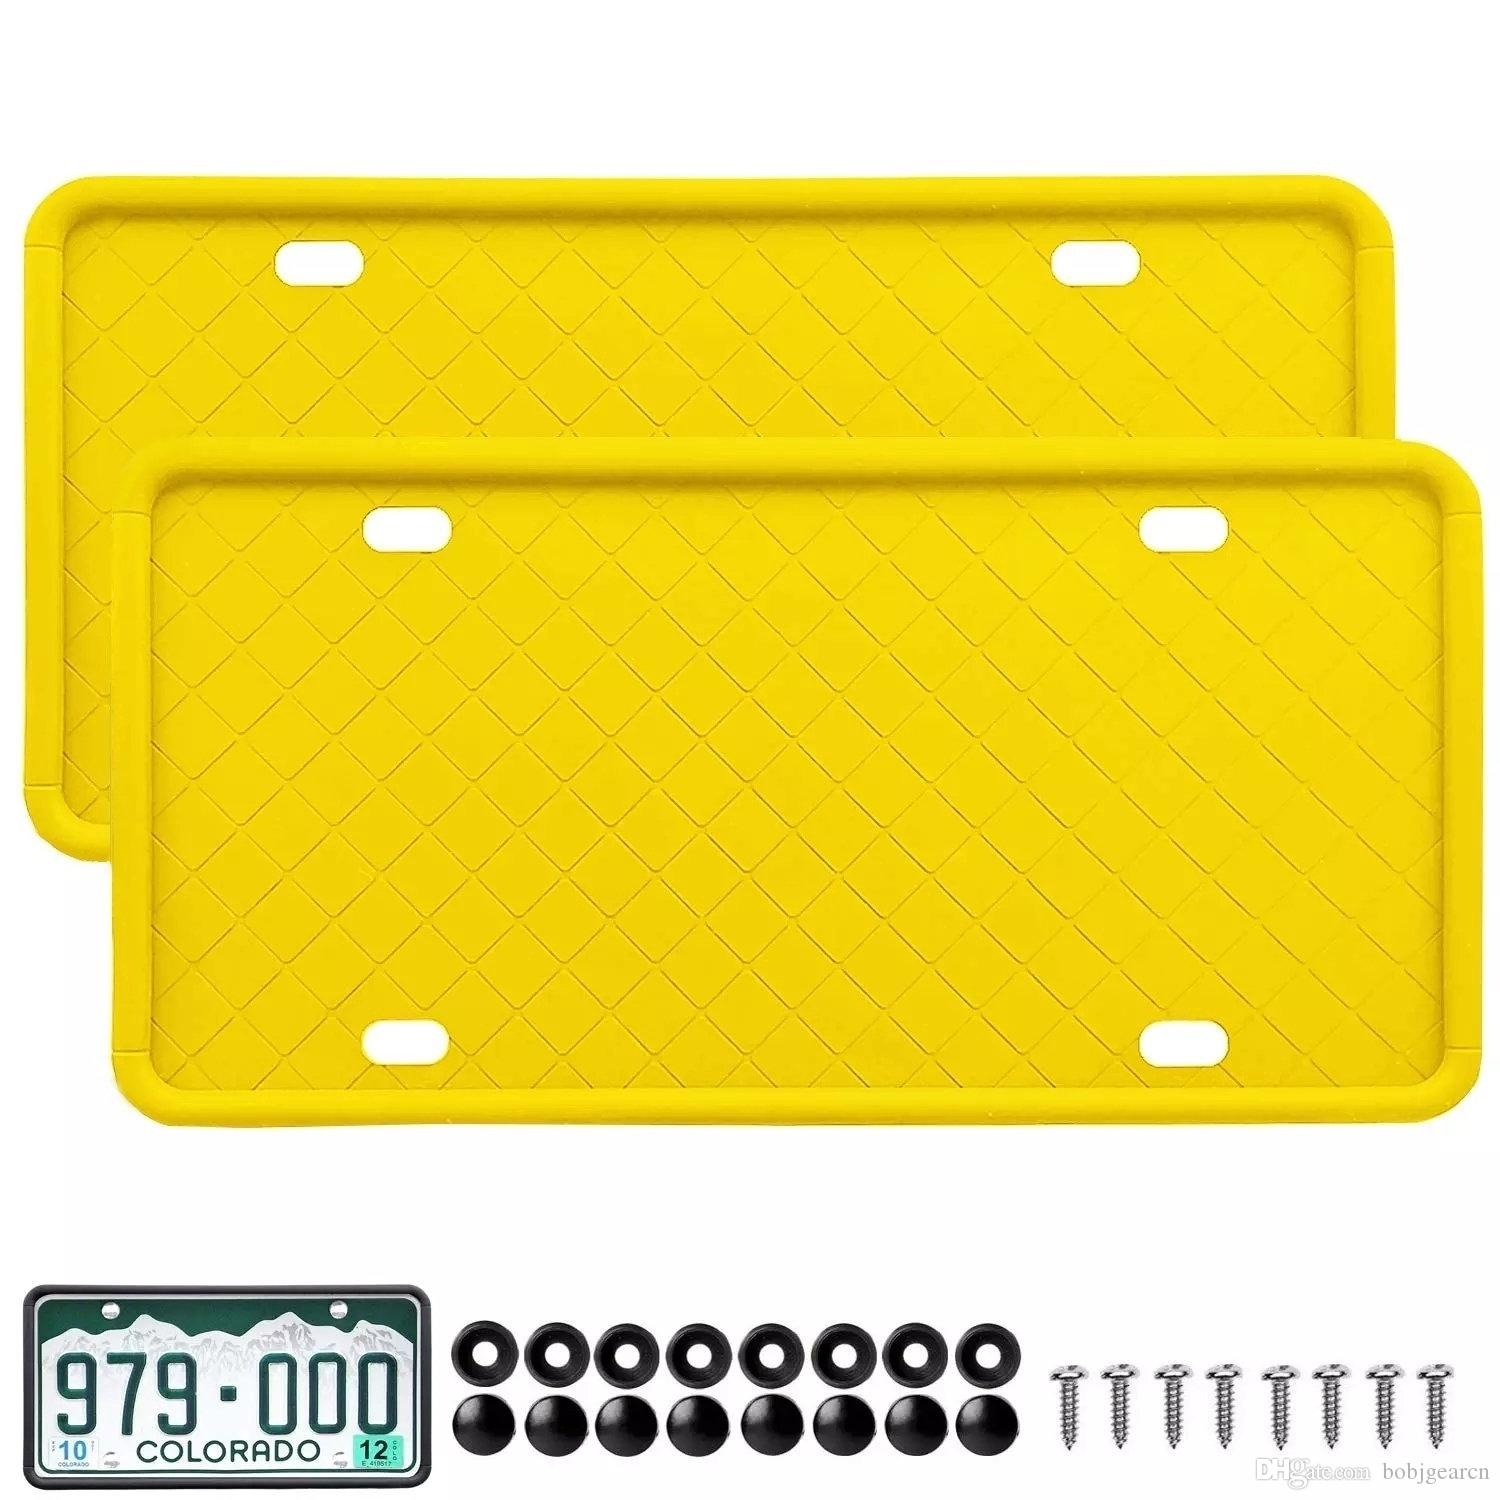 Black Car License Plate Frame Weather-Proof 100/% Street Legal Rattle-Proof Hikig Silicone Car License Plate Frame Rust-Proof